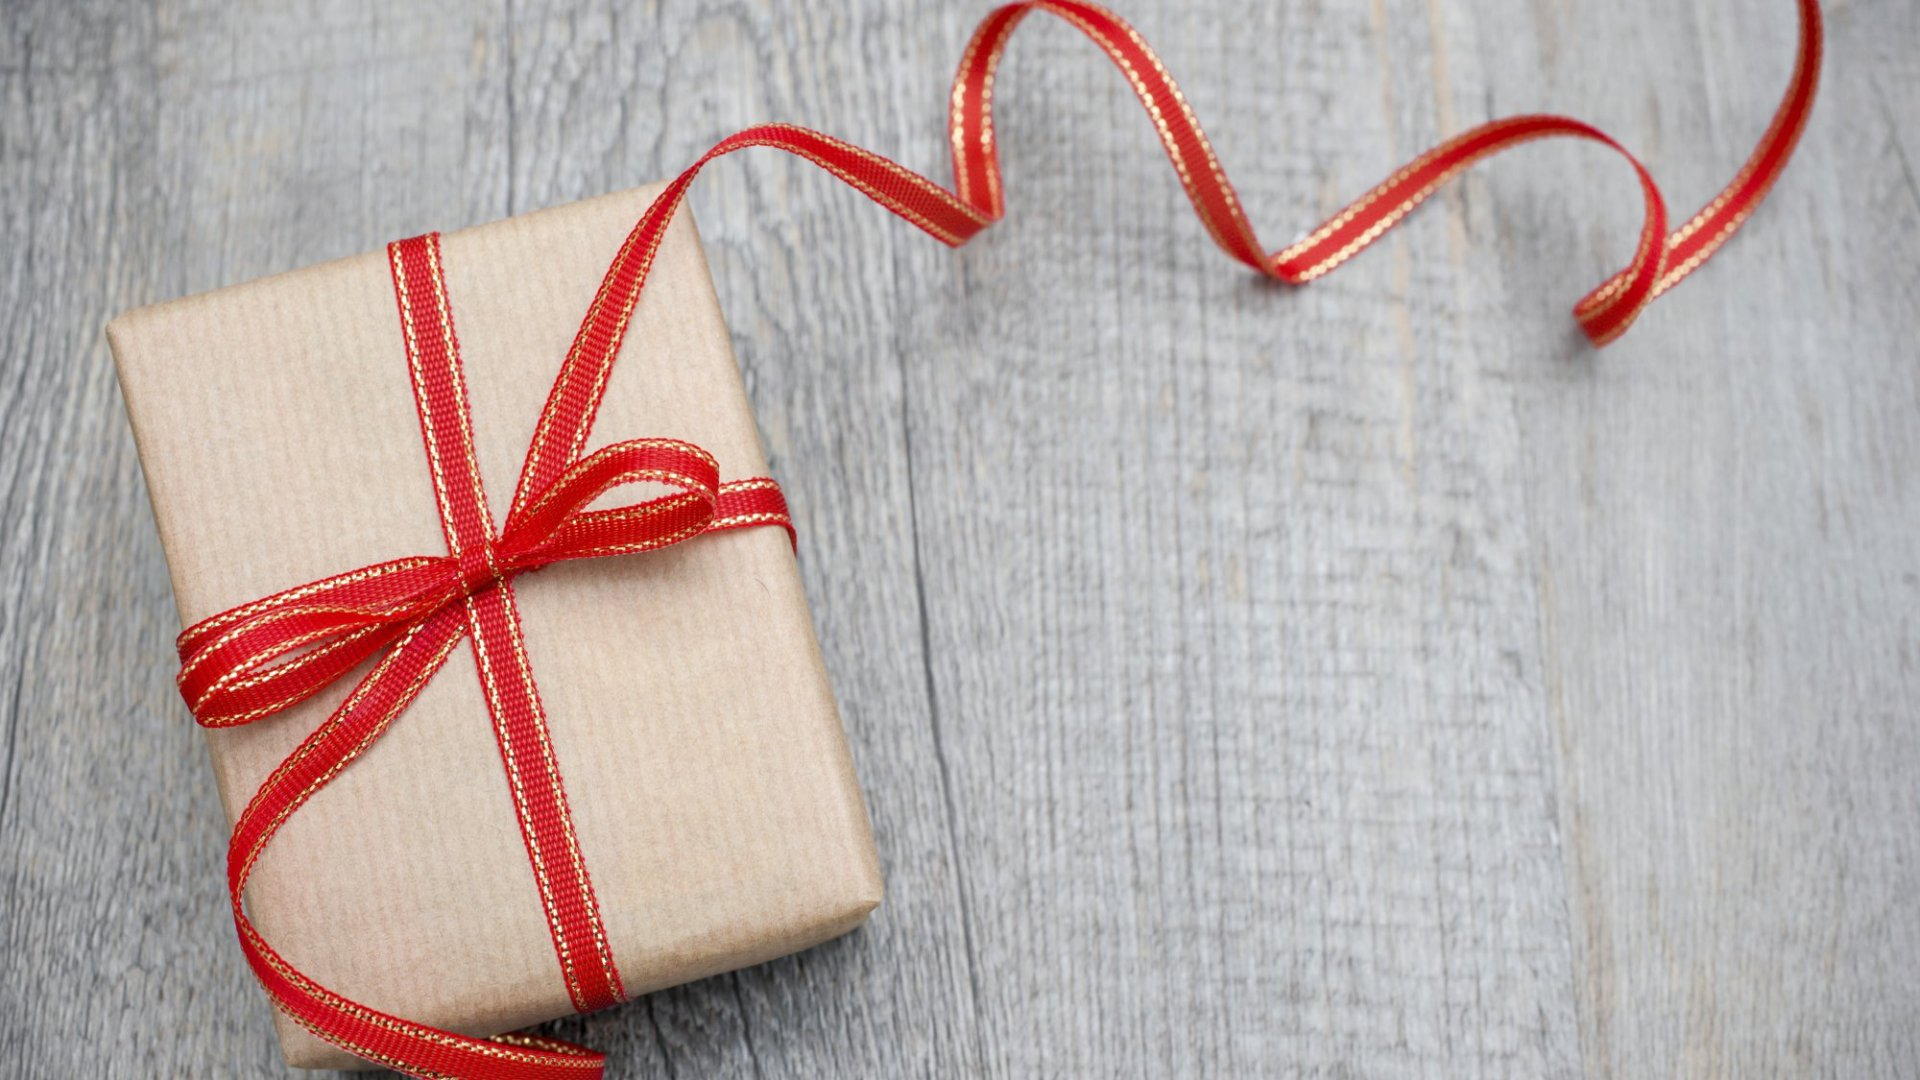 Here's How Gift-Giving Can Help Your Company Even After the Holidays